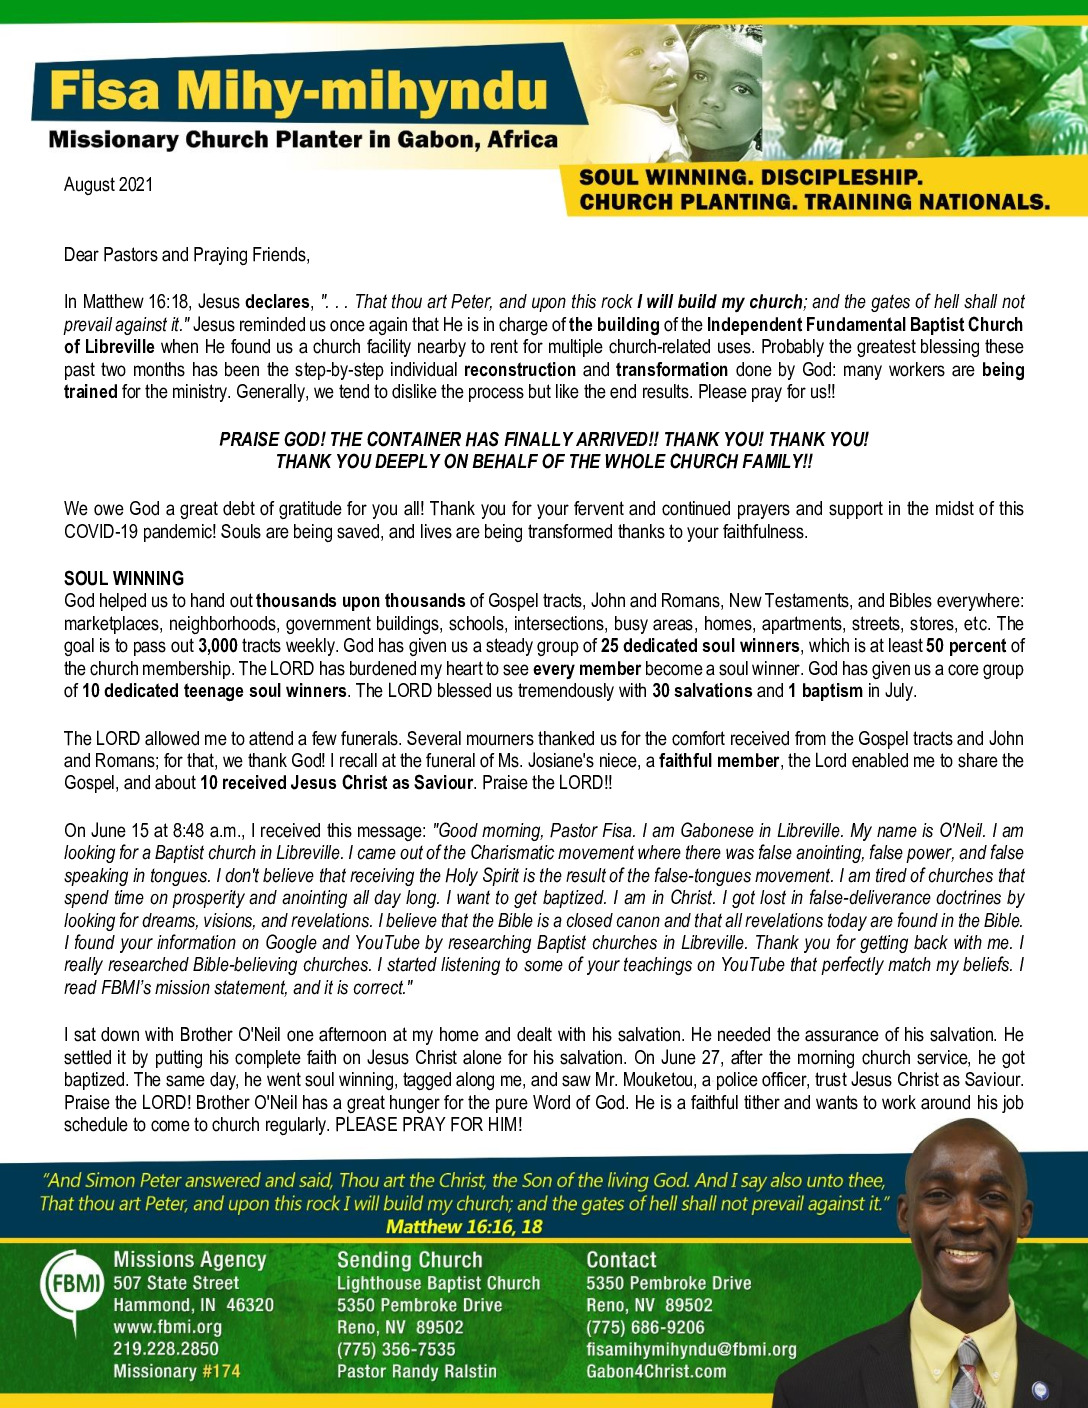 thumbnail of Fisa Mihy-mihyndu August 2021 Prayer Letter – Revised